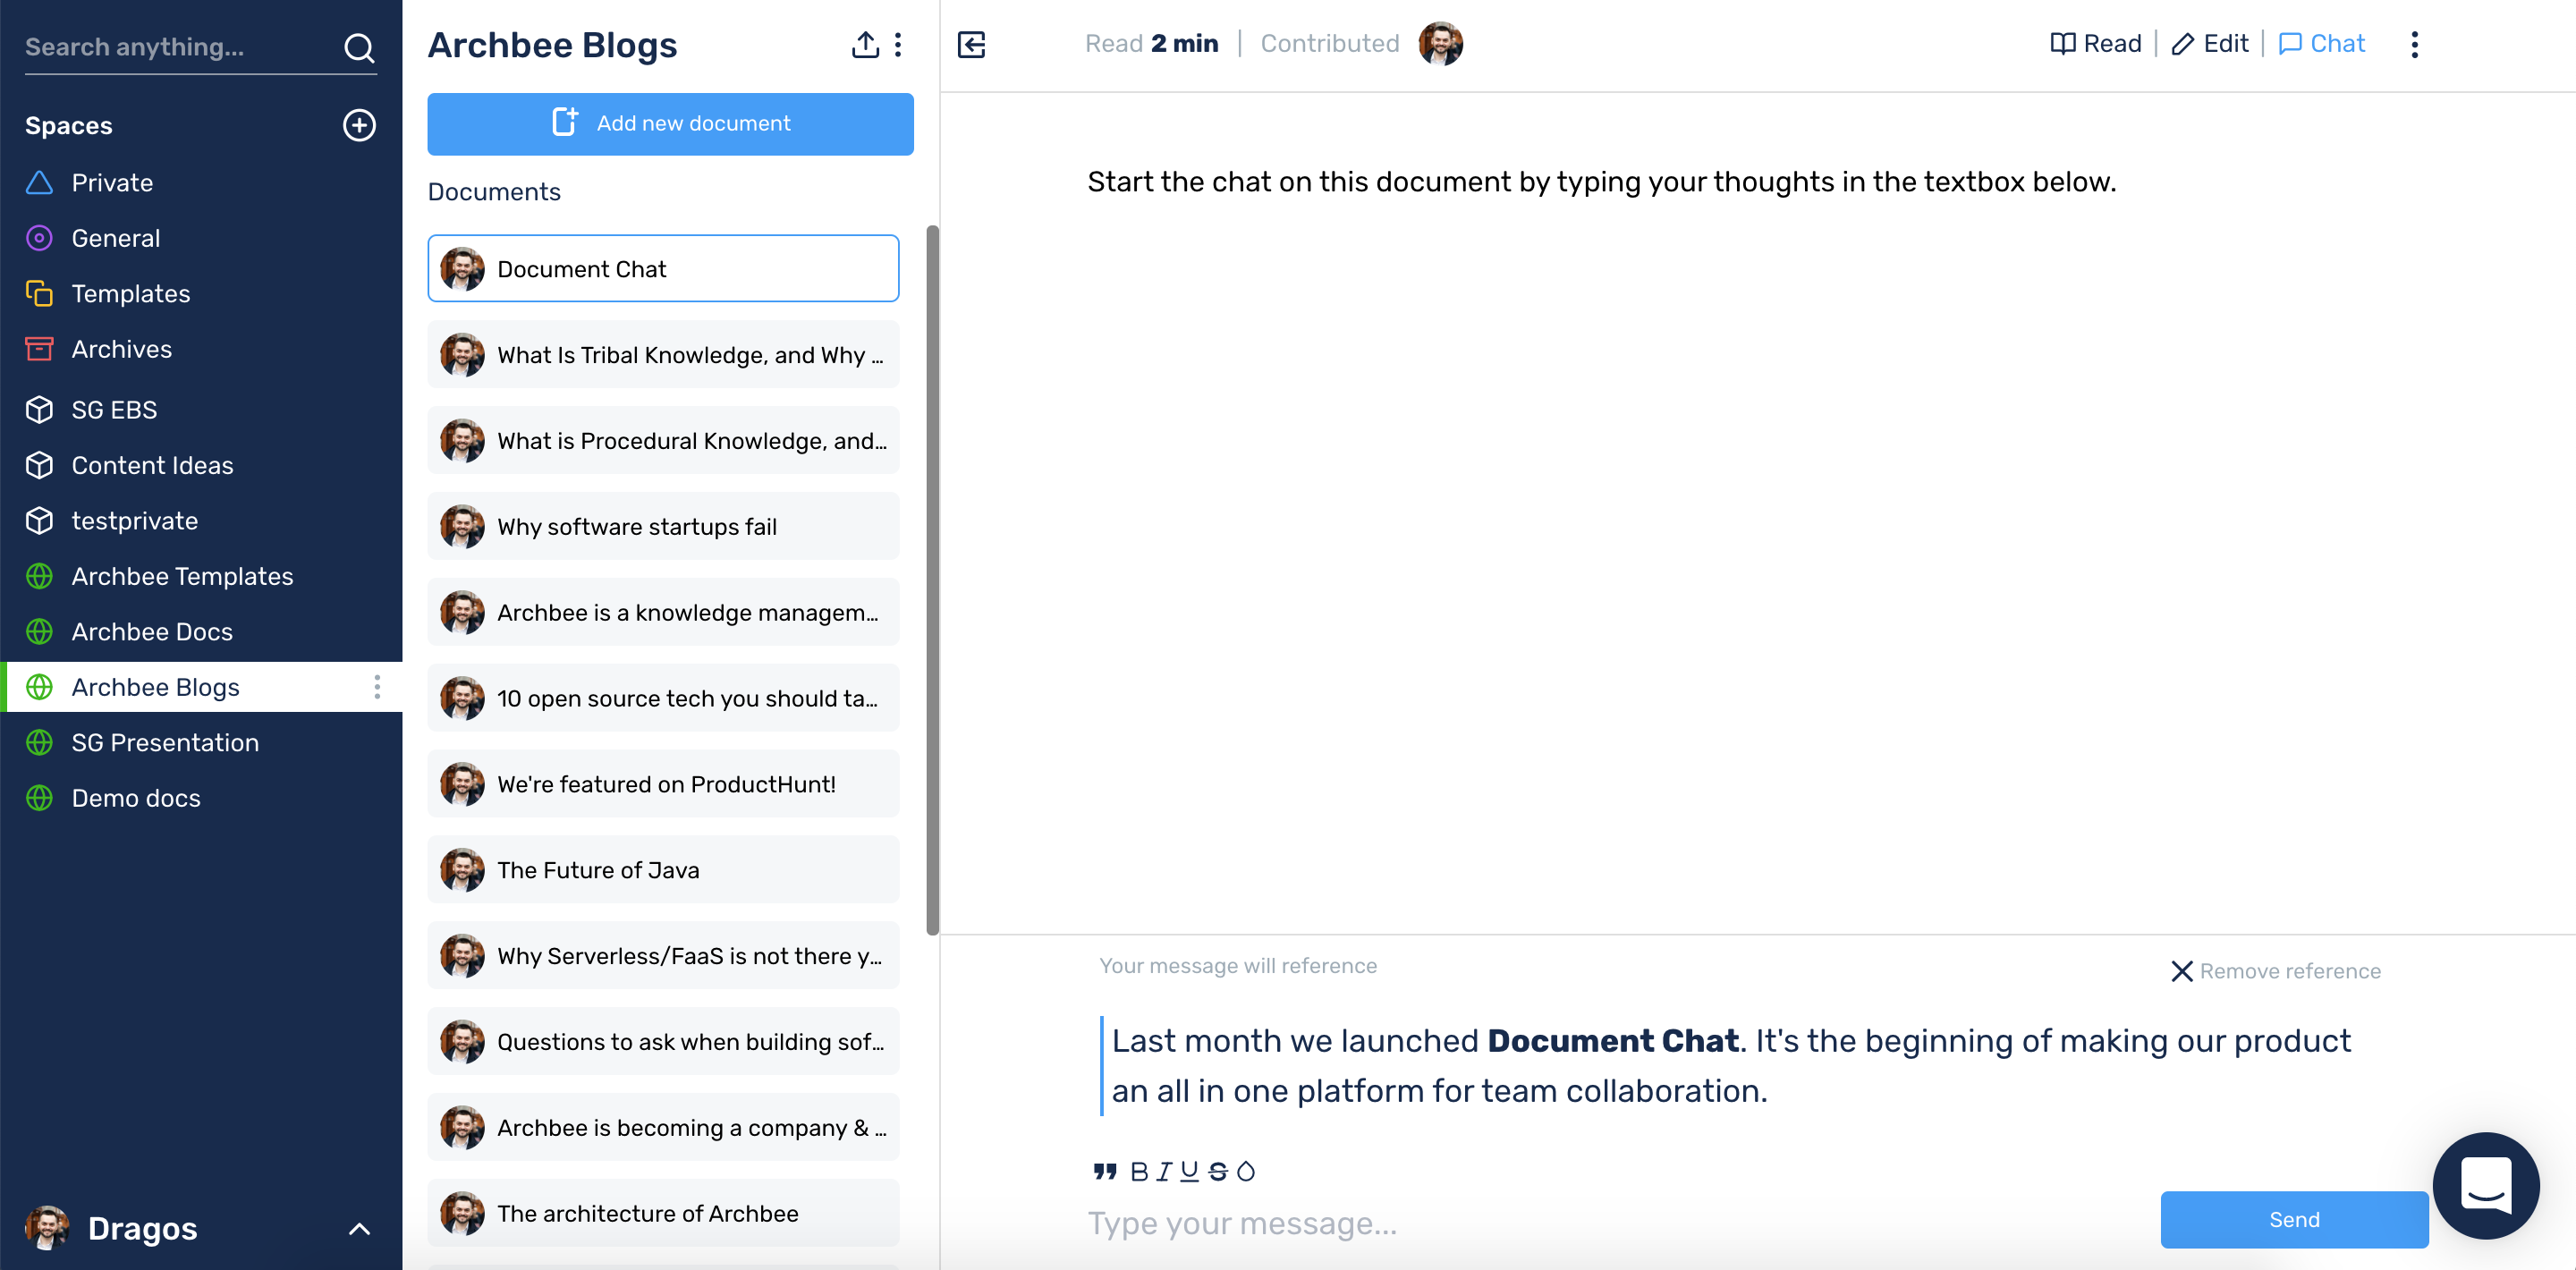 Document Chat is here